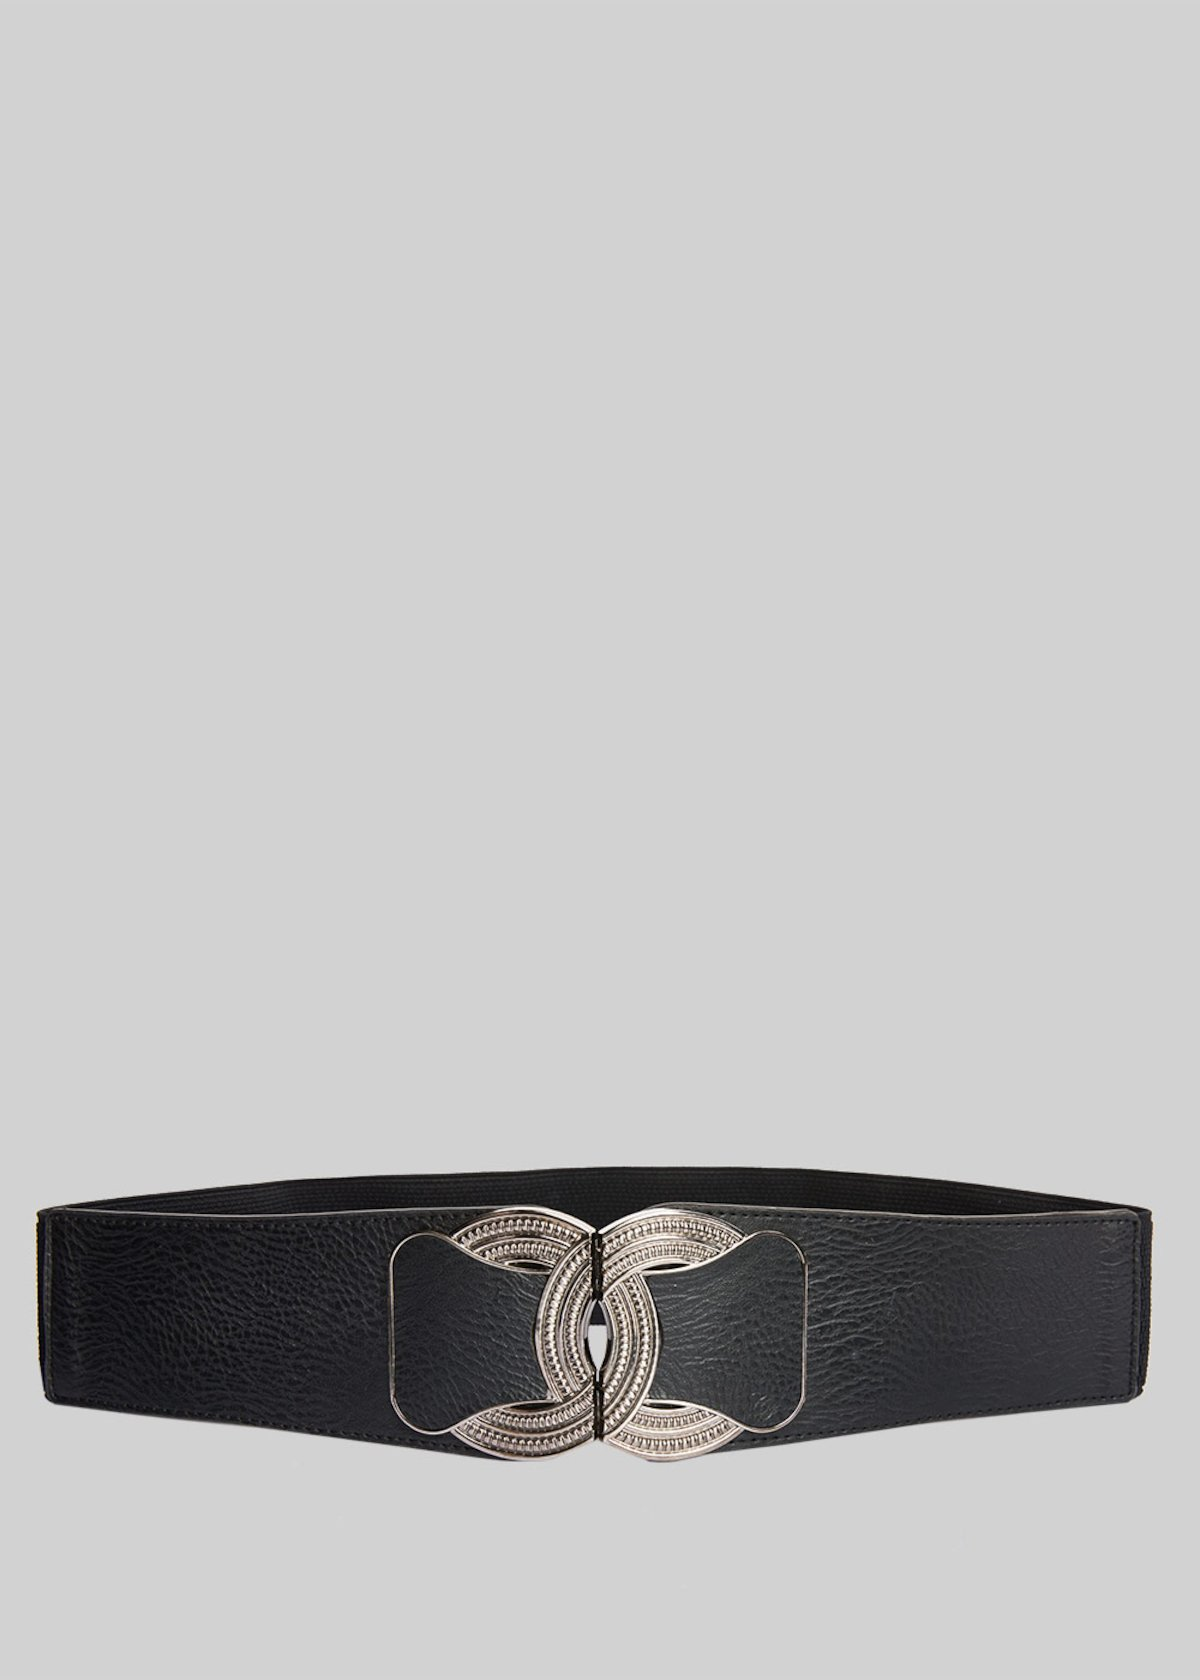 Colty belt in faux leather with metal closure - Black